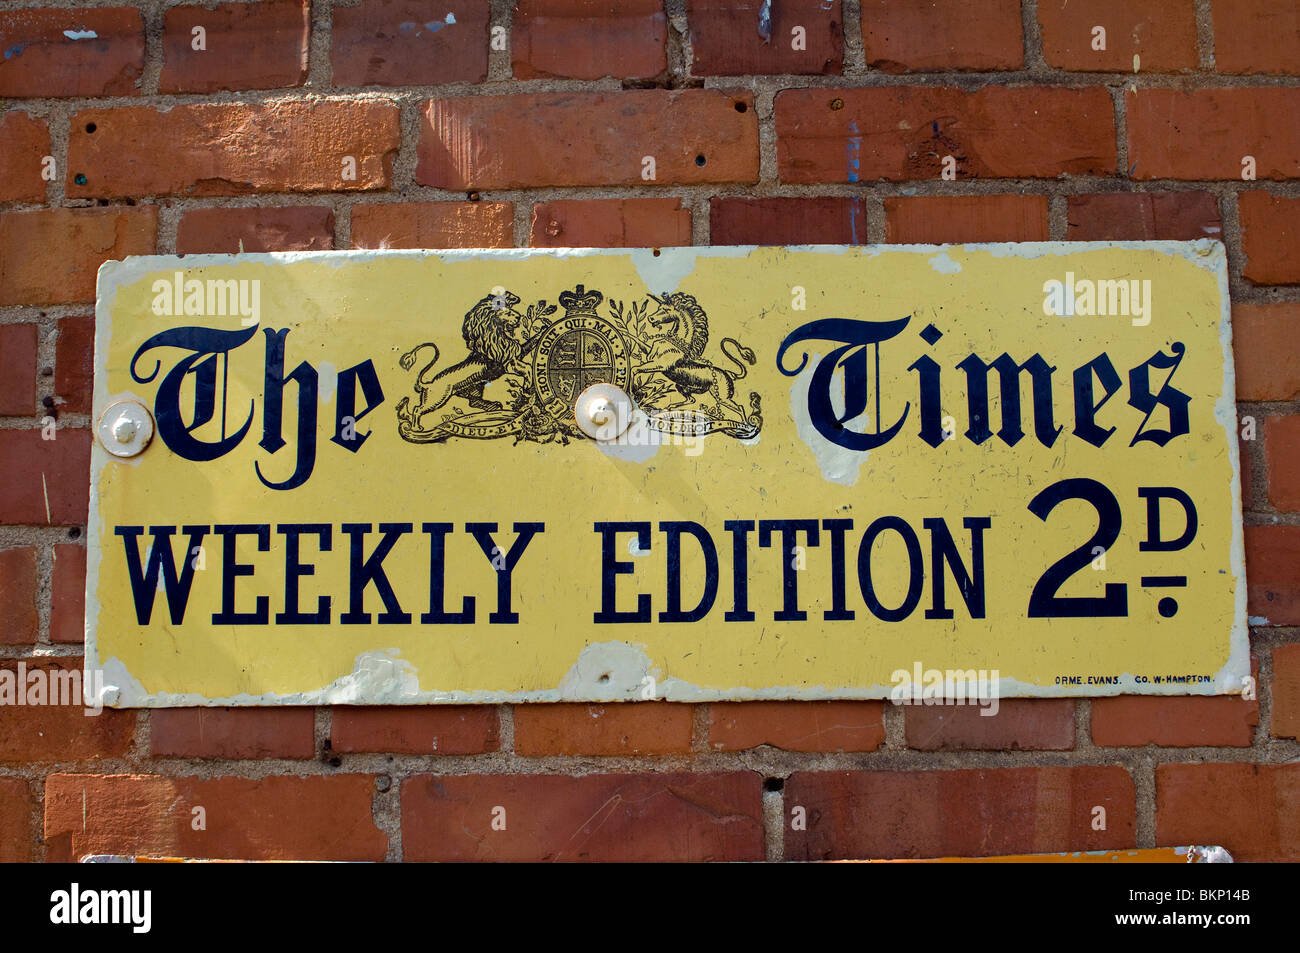 the times weekly edition,Times newspaper,2D - Stock Image